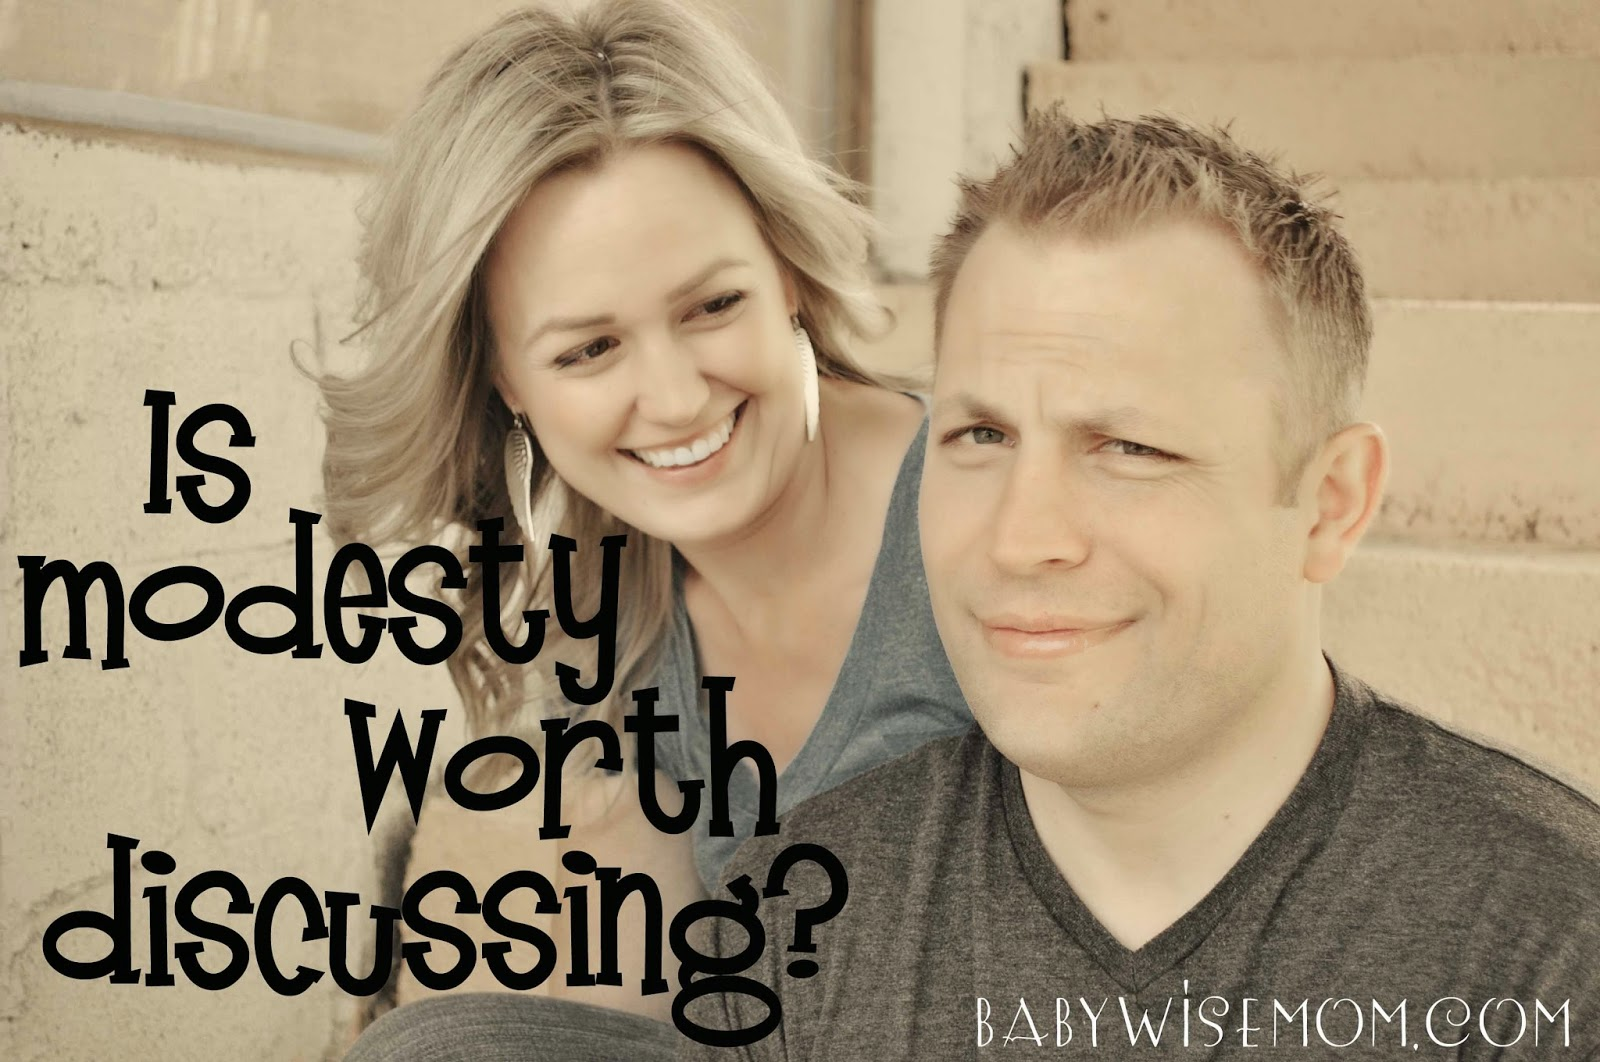 Is Modesty Worth Discussing?